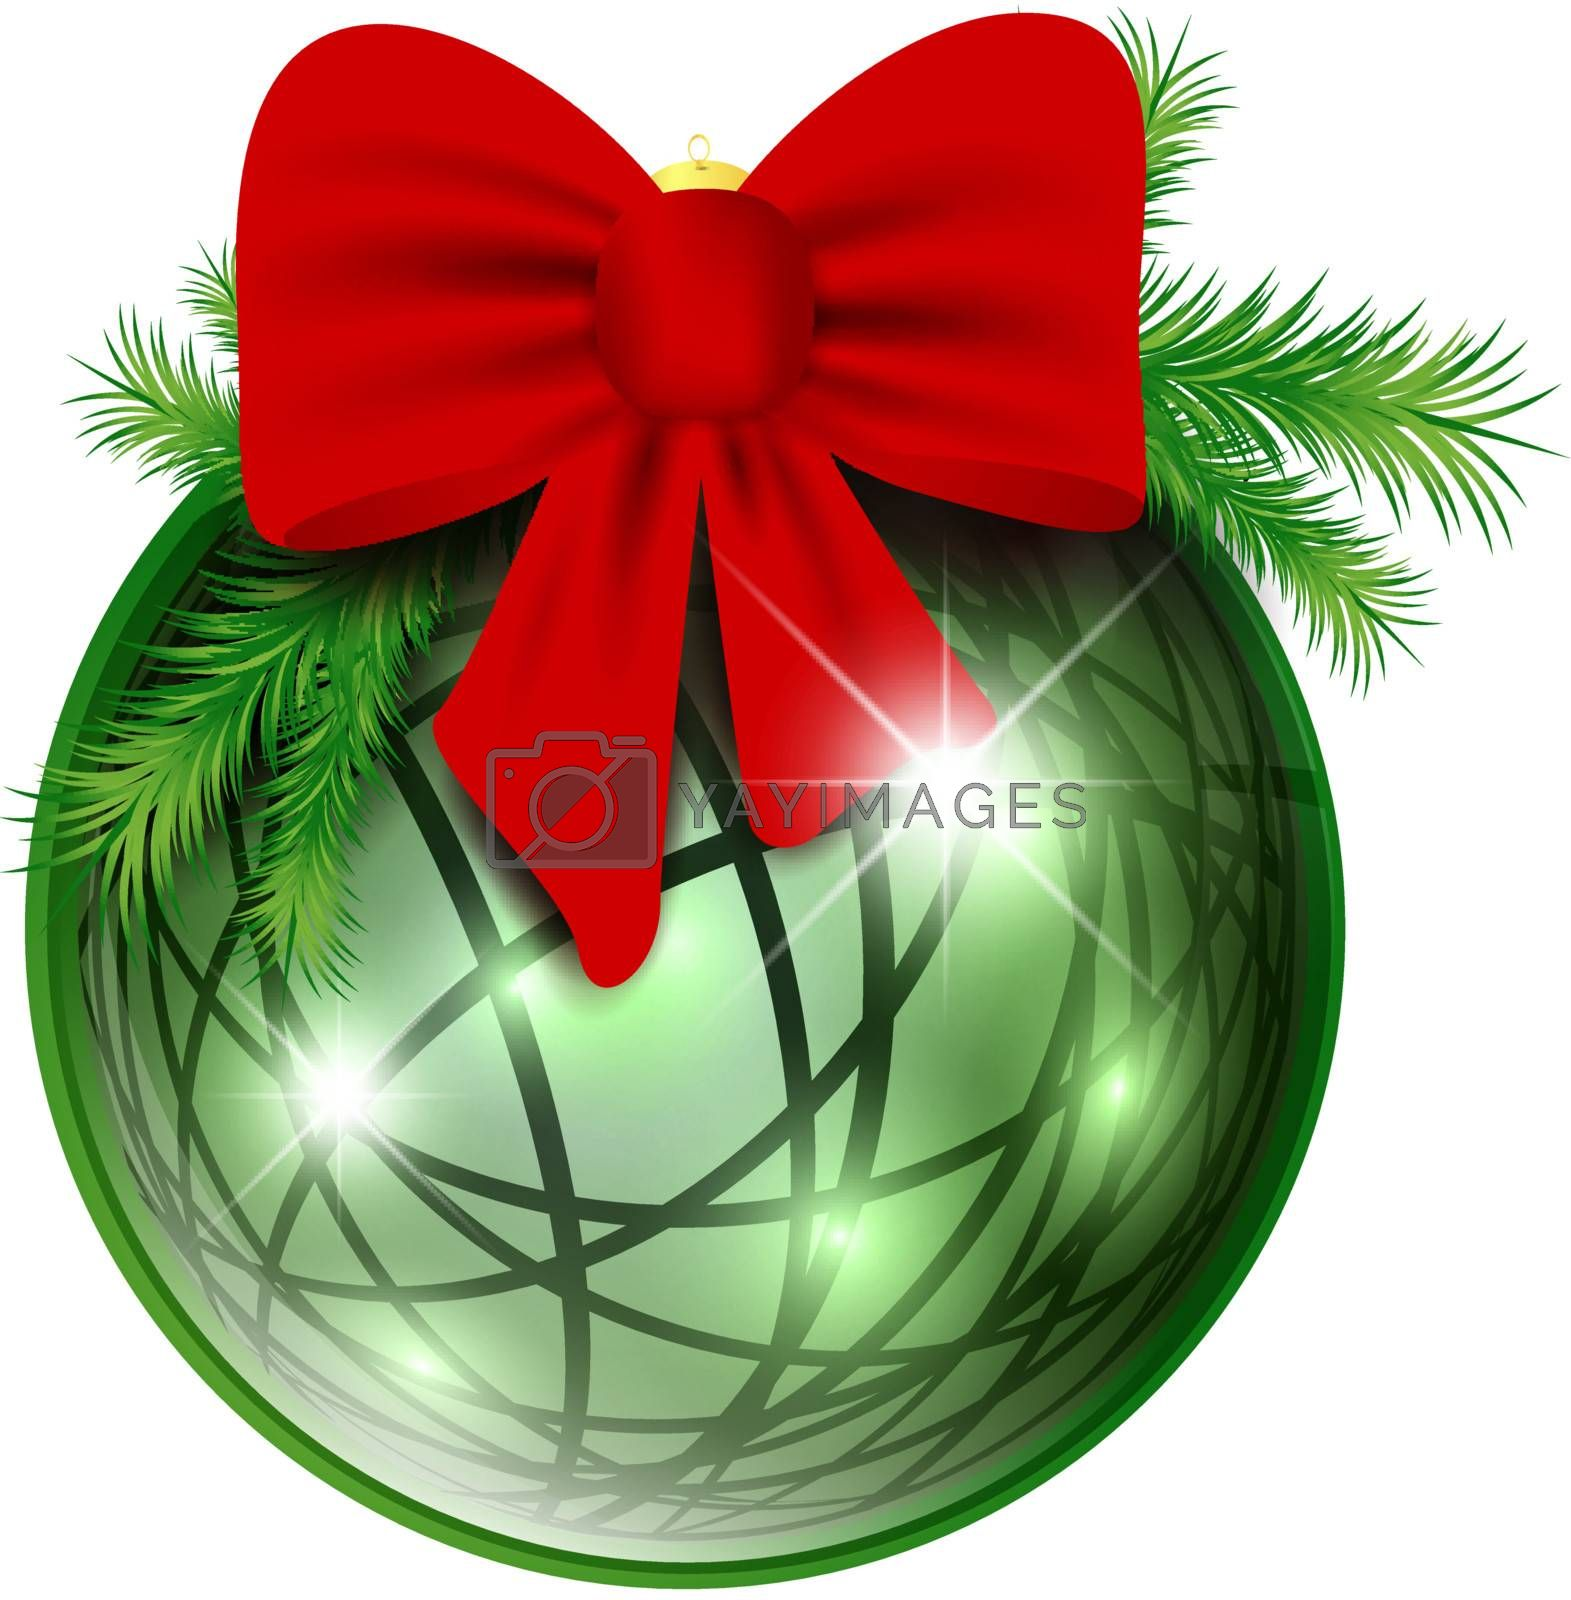 New year ball with red bow and pine branch over white background